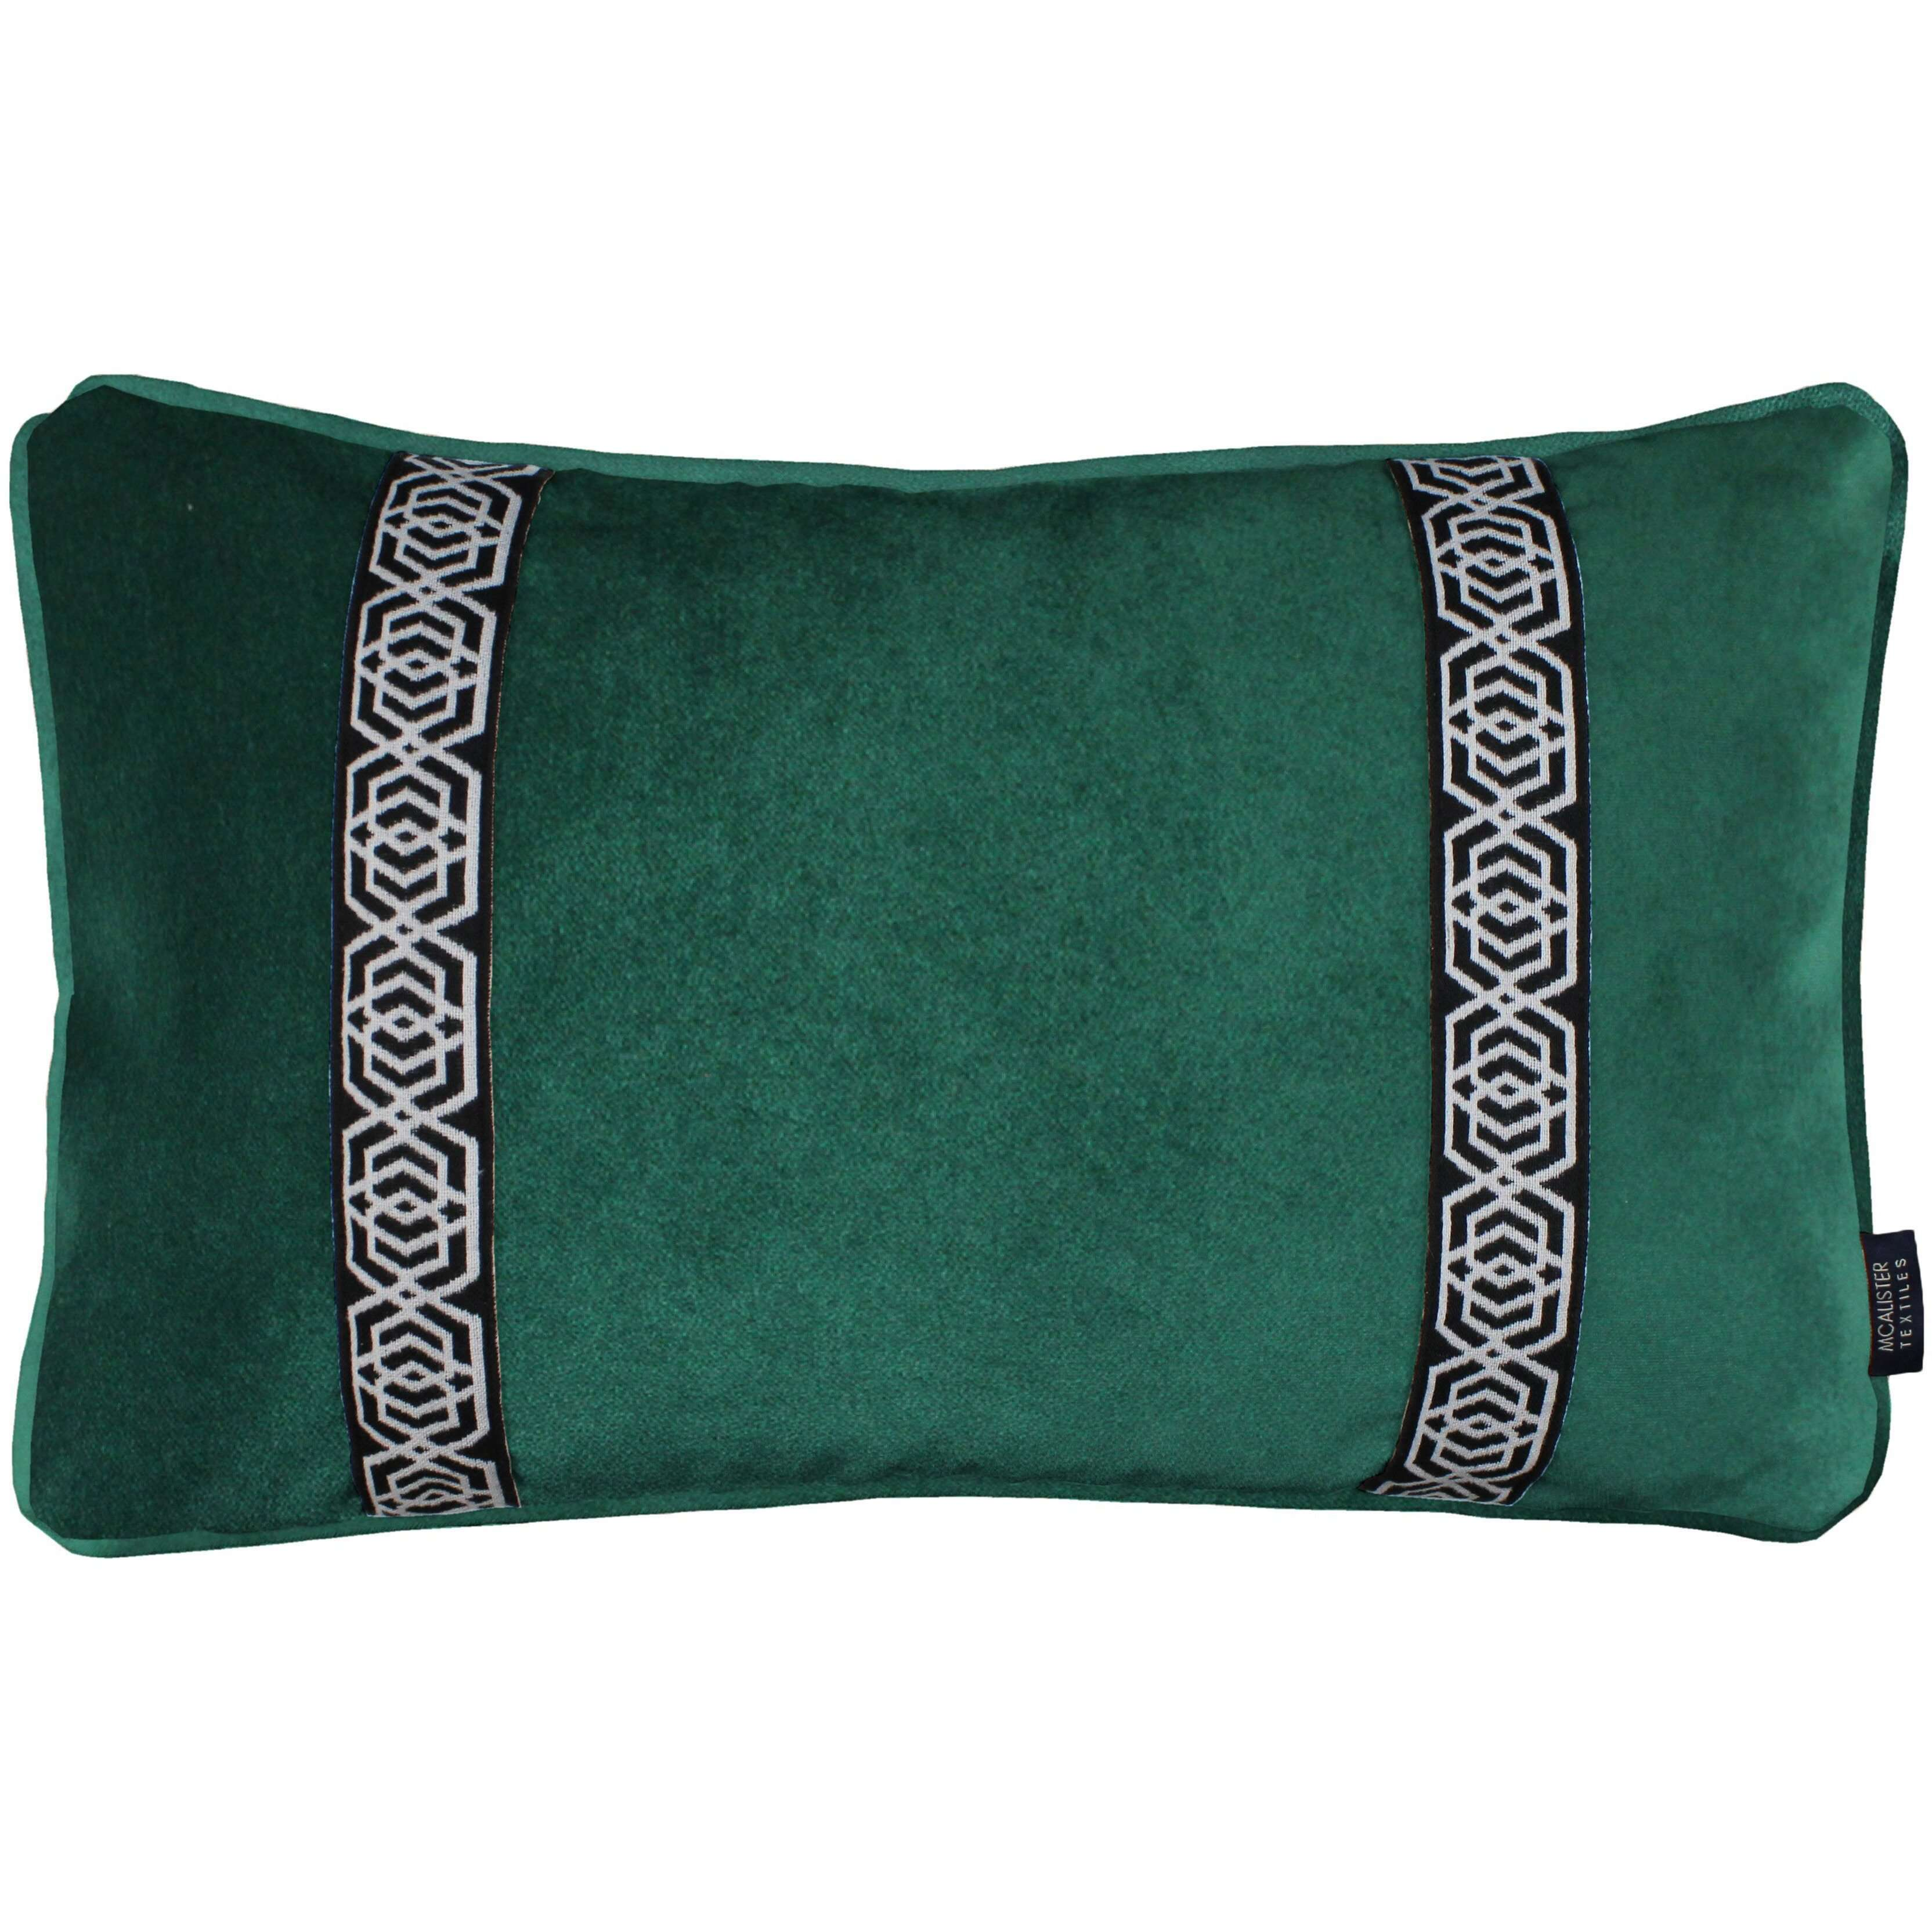 McAlister Textiles Coba Striped Emerald Green Velvet Cushion Cushions and Covers Cover Only 50cm x 30cm